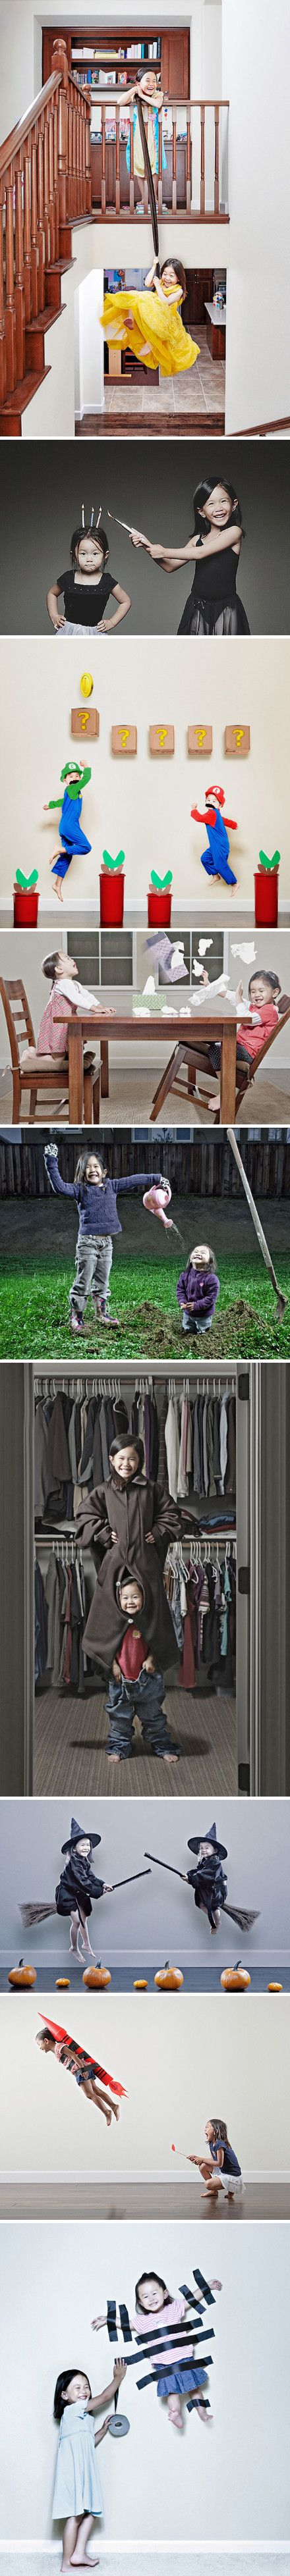 Awesome ideas for pictures